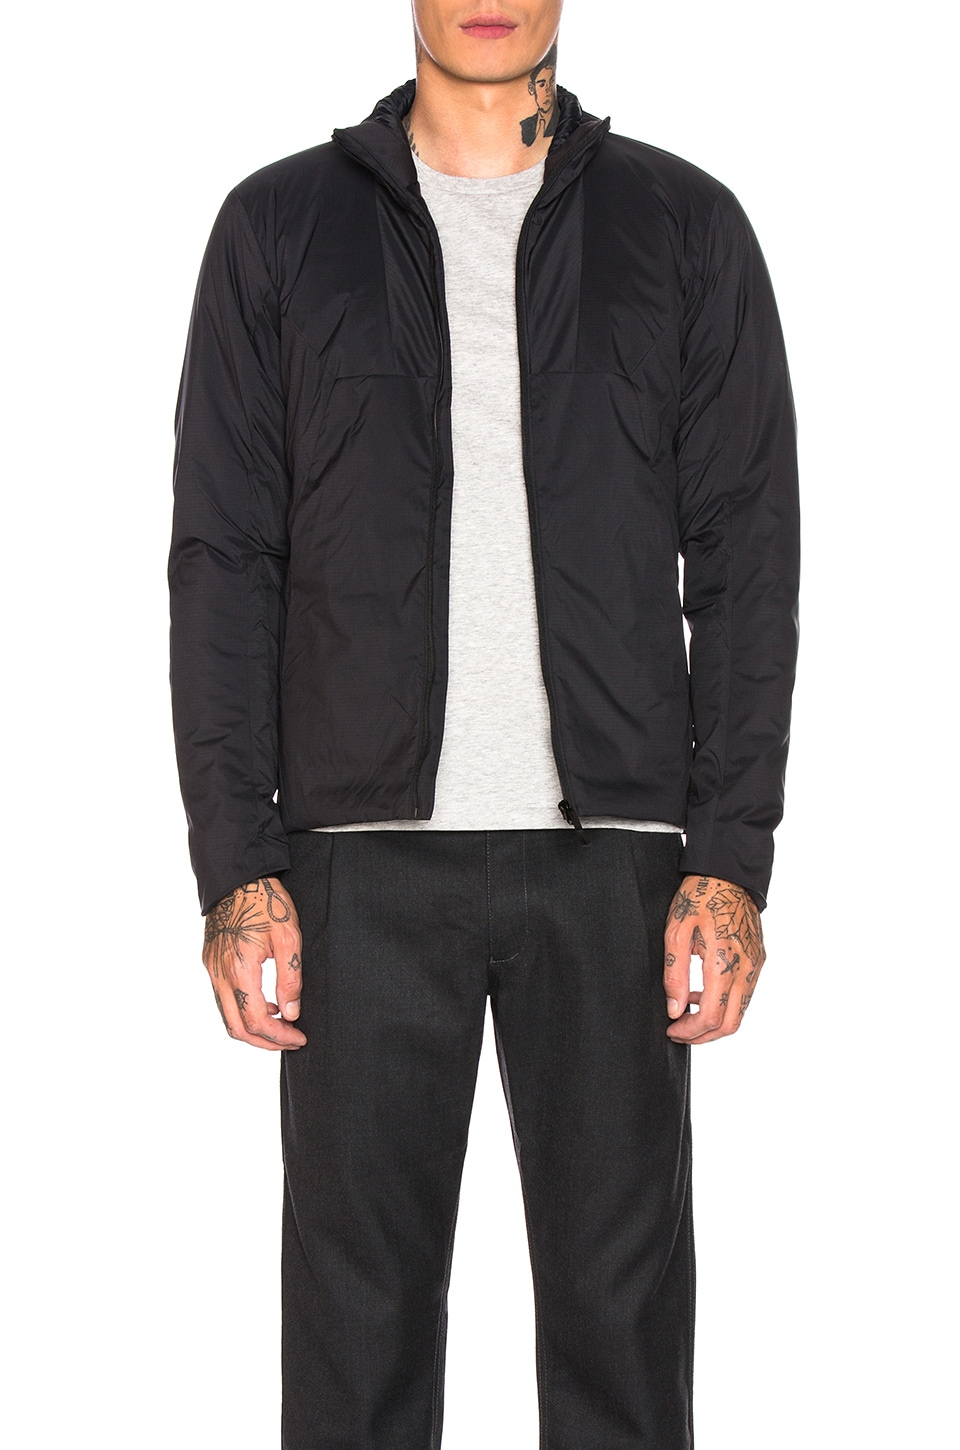 Arc'teryx Veilance Mionn Is Jacket in Black